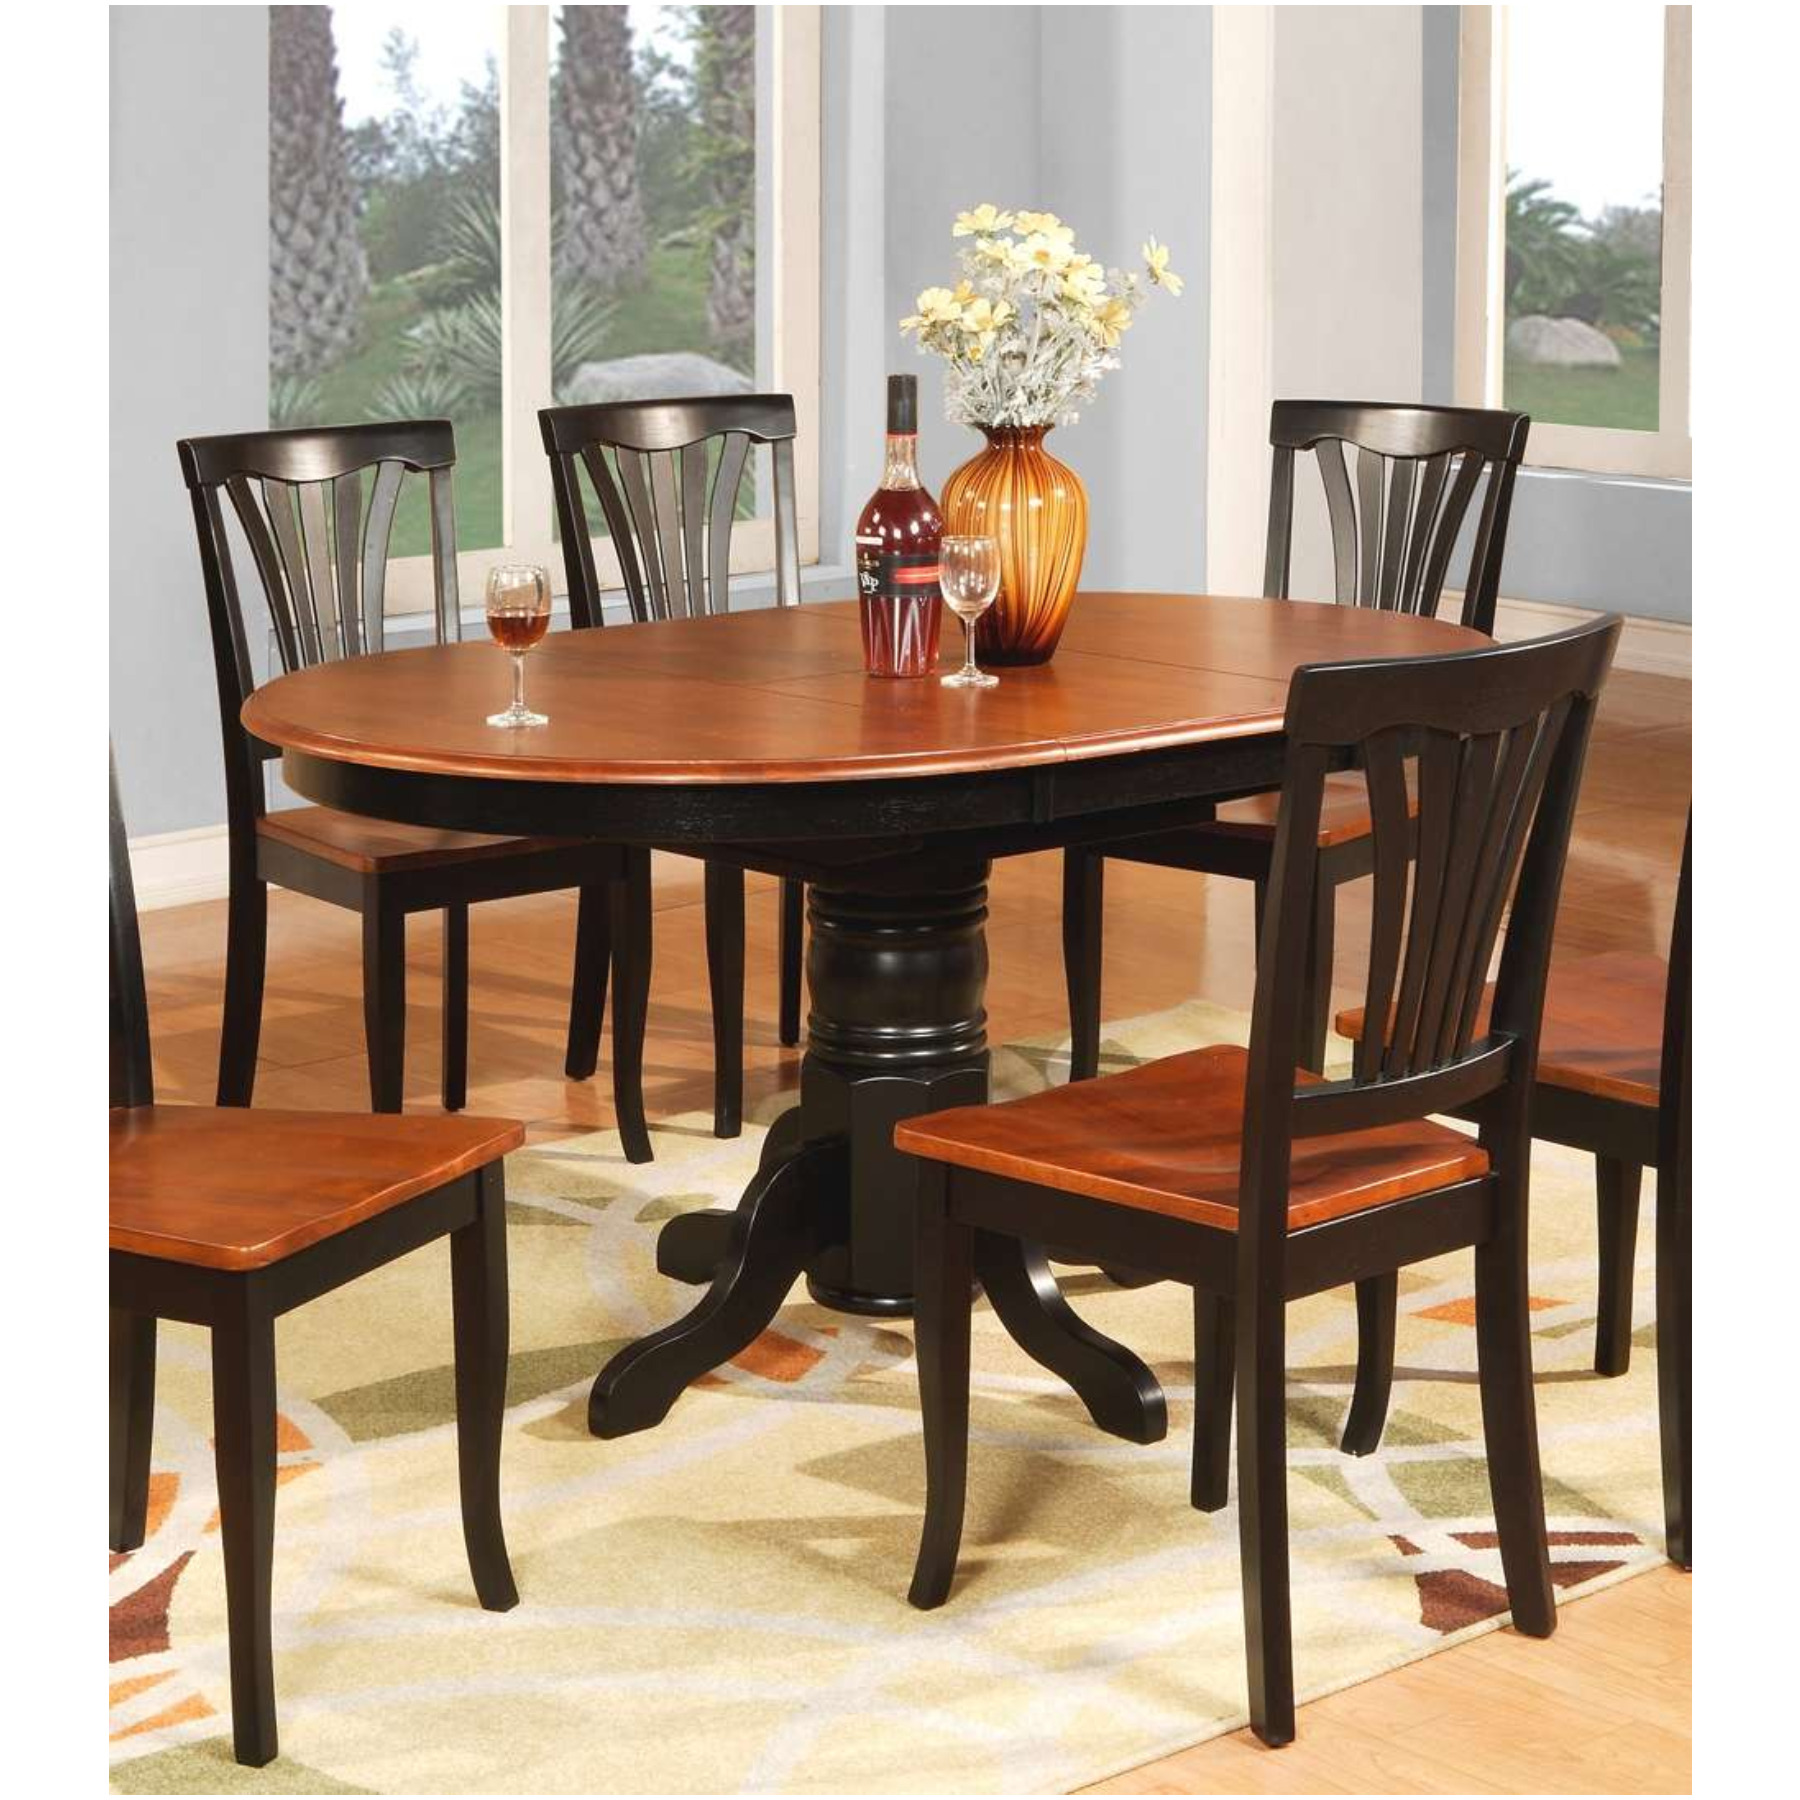 East west furniture east west furniture avon 5 piece 60x42 for Dining room table 42 x 60